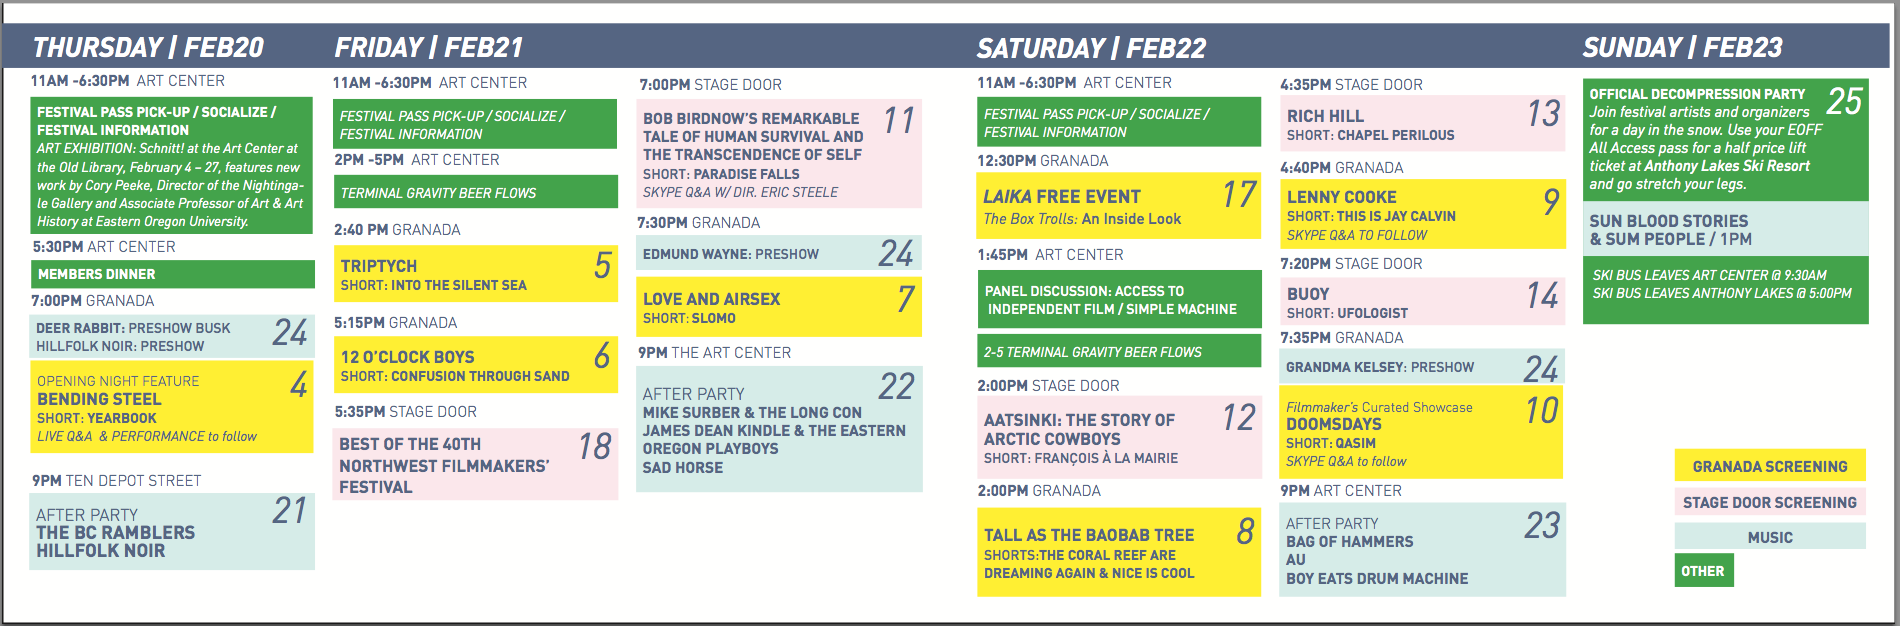 #EOFF2014 // FULL SCHEDULE OF EVENTS